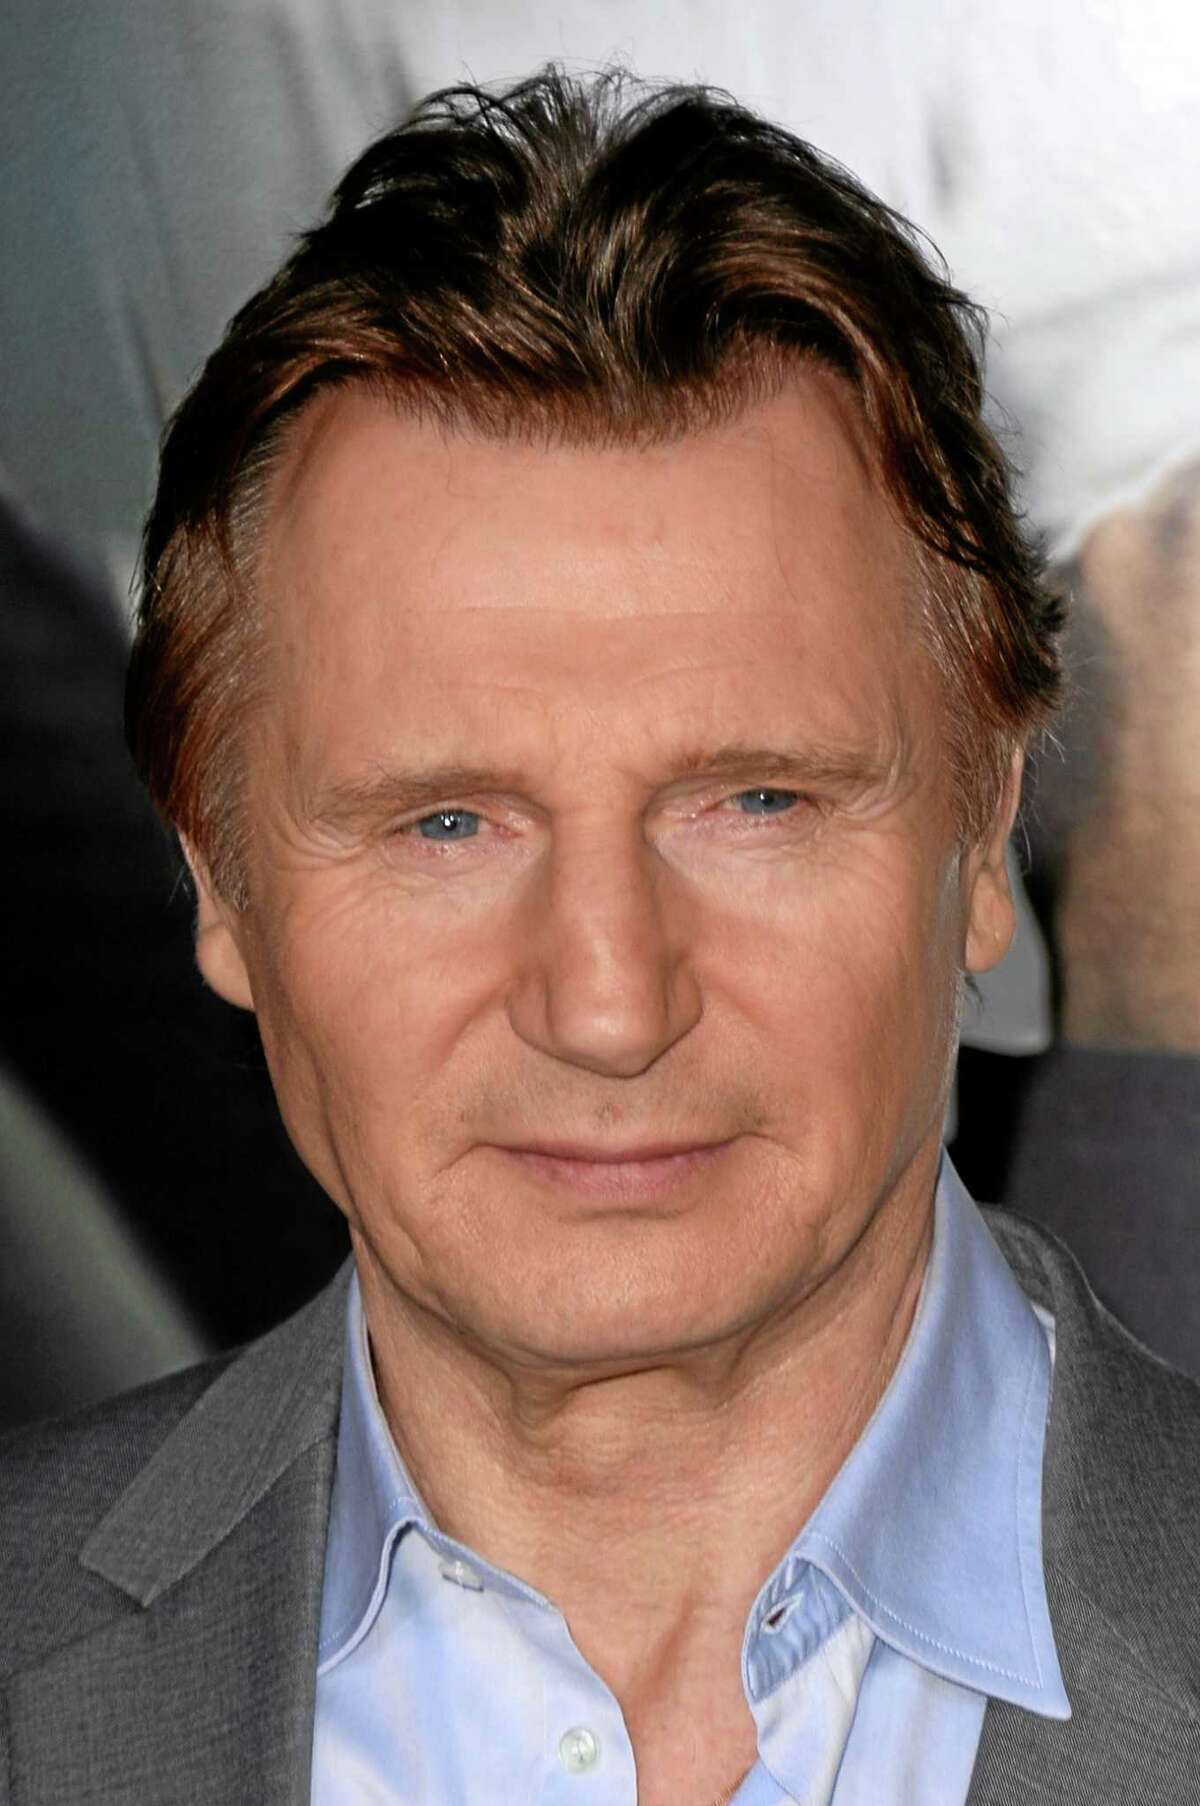 FILE - This Feb. 24, 2014 file photo shows Liam Neeson in Los Angeles.